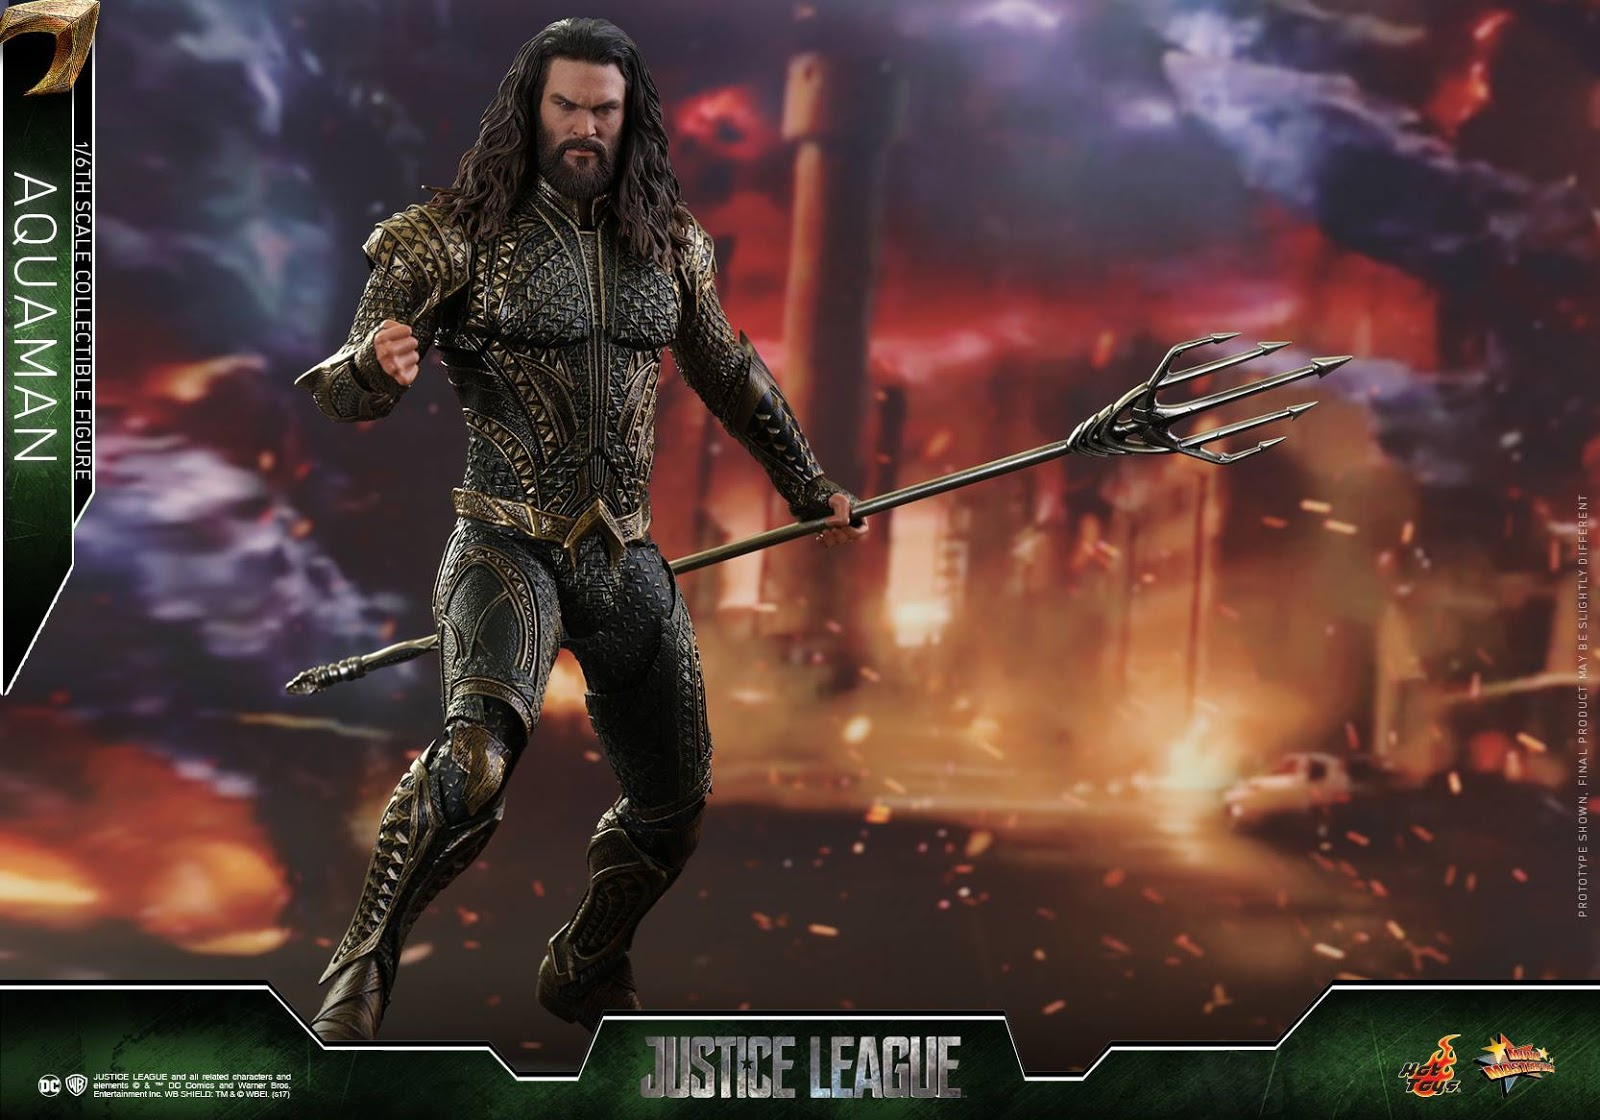 Action Figures: Marvel, DC, etc. - Página 5 Aquaman_16